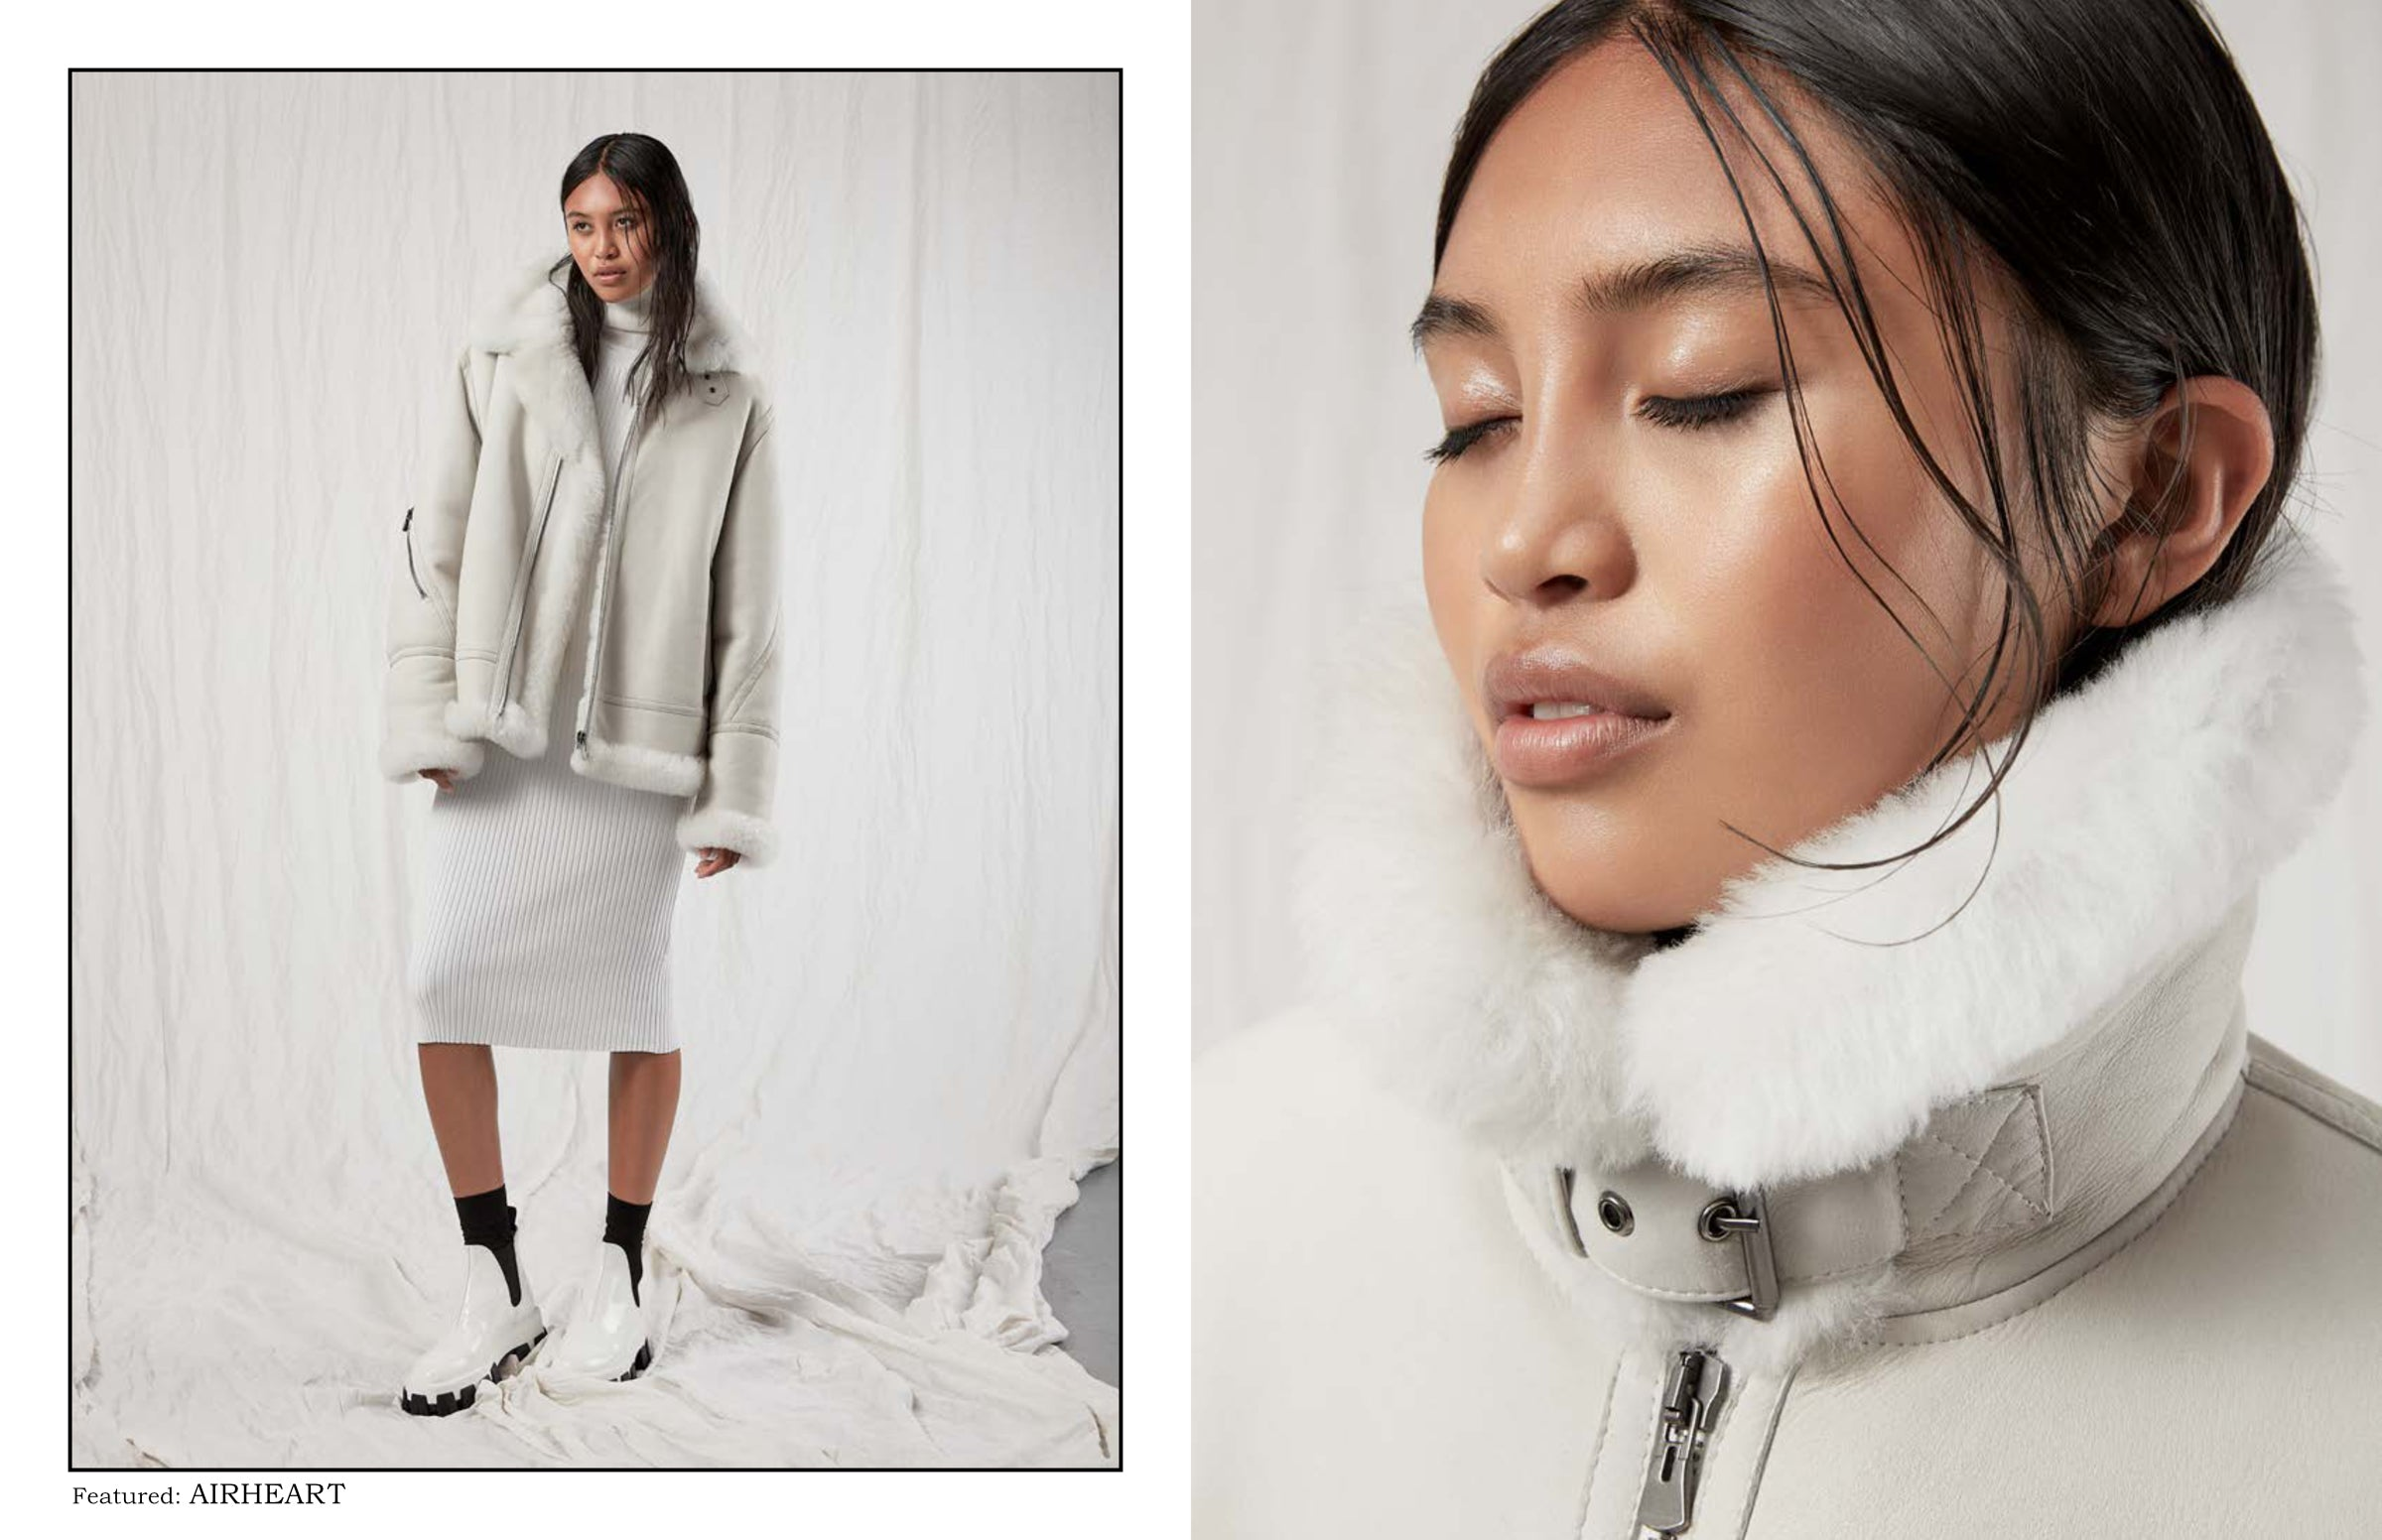 2020 White Label Campaign Images